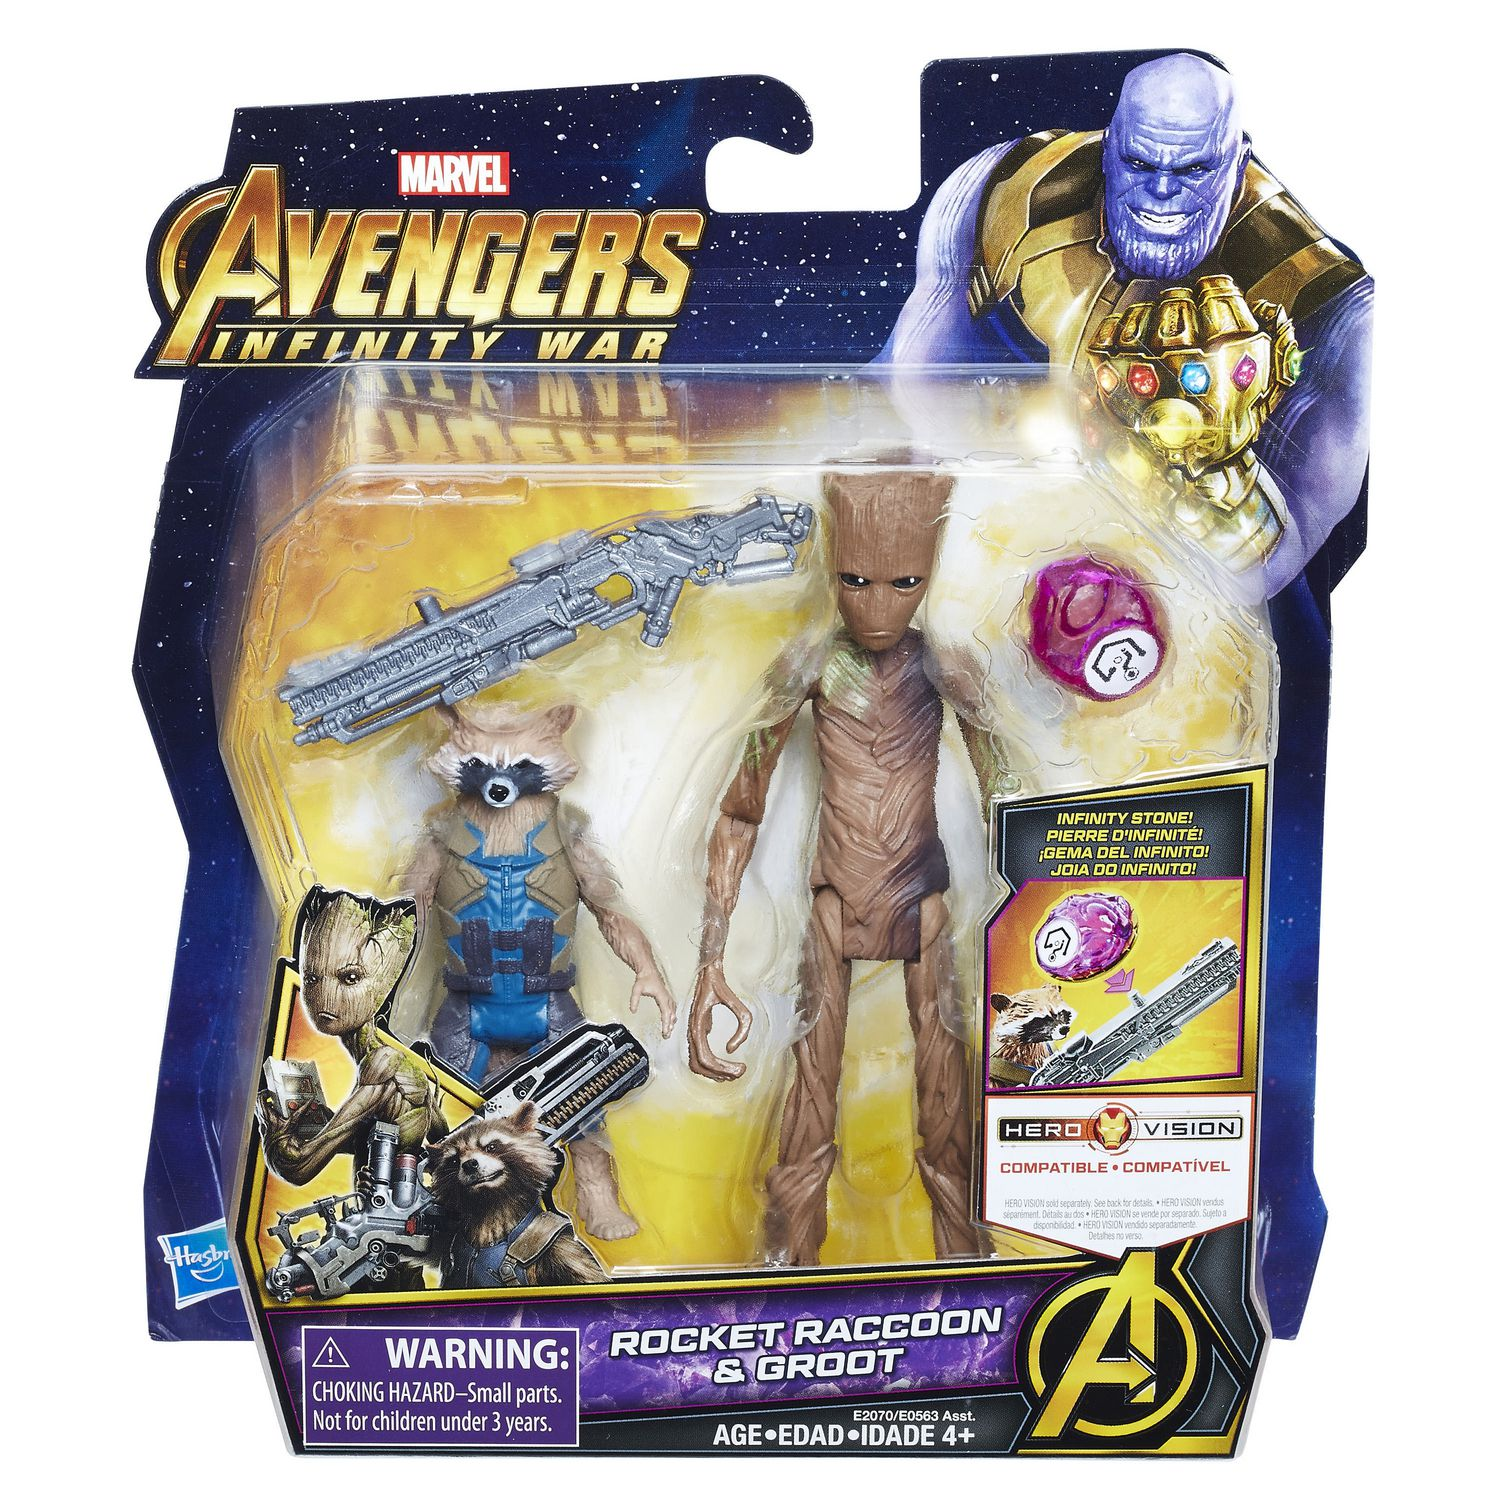 Marvel Avengers Infinity War Rocket Raccoon and Groot With Infinity Stone New